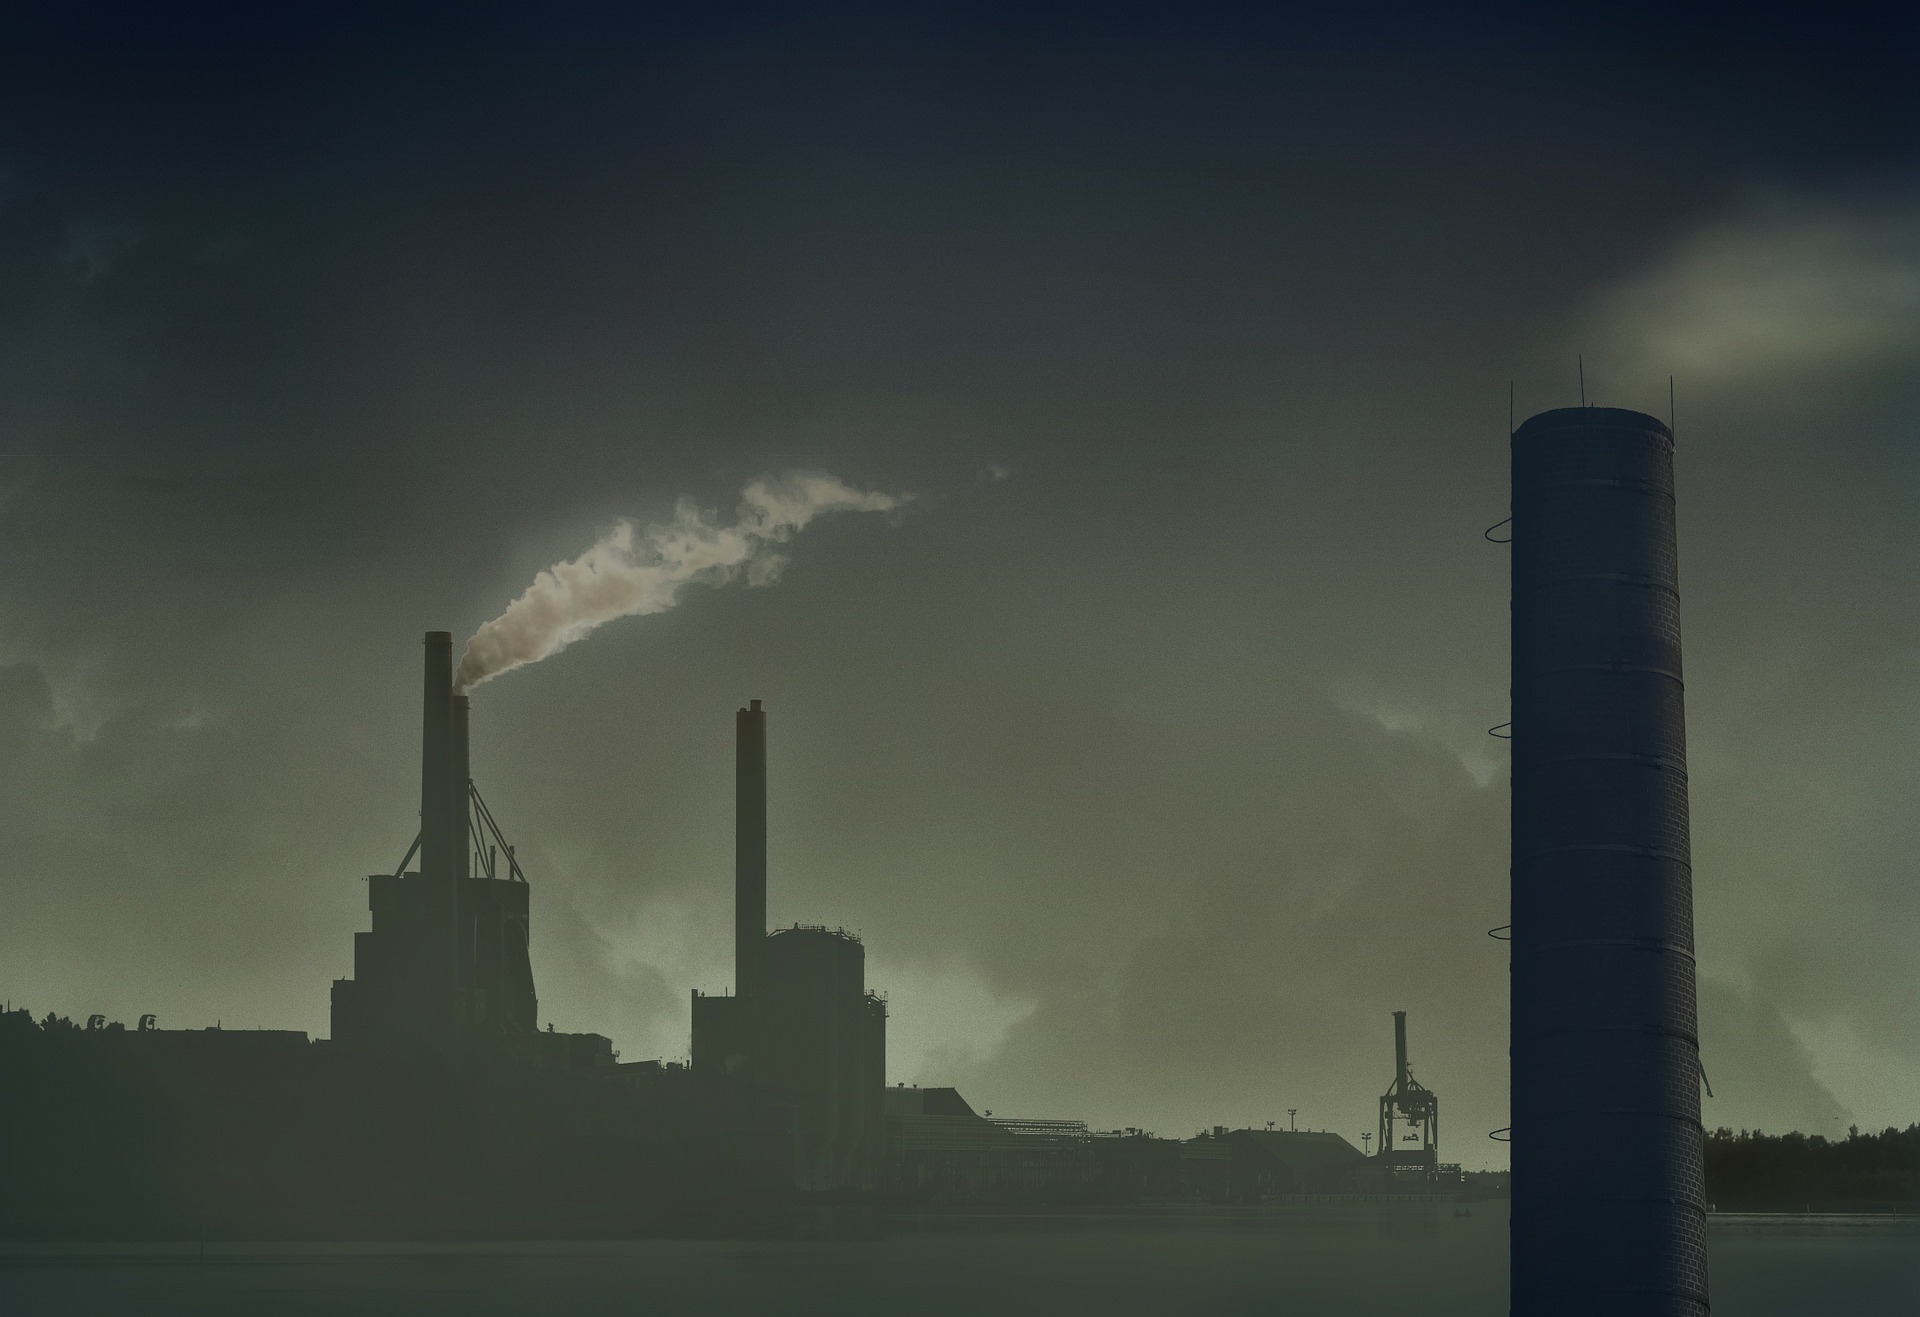 New Research Links Air Pollution to Higher Coronavirus Death Rates